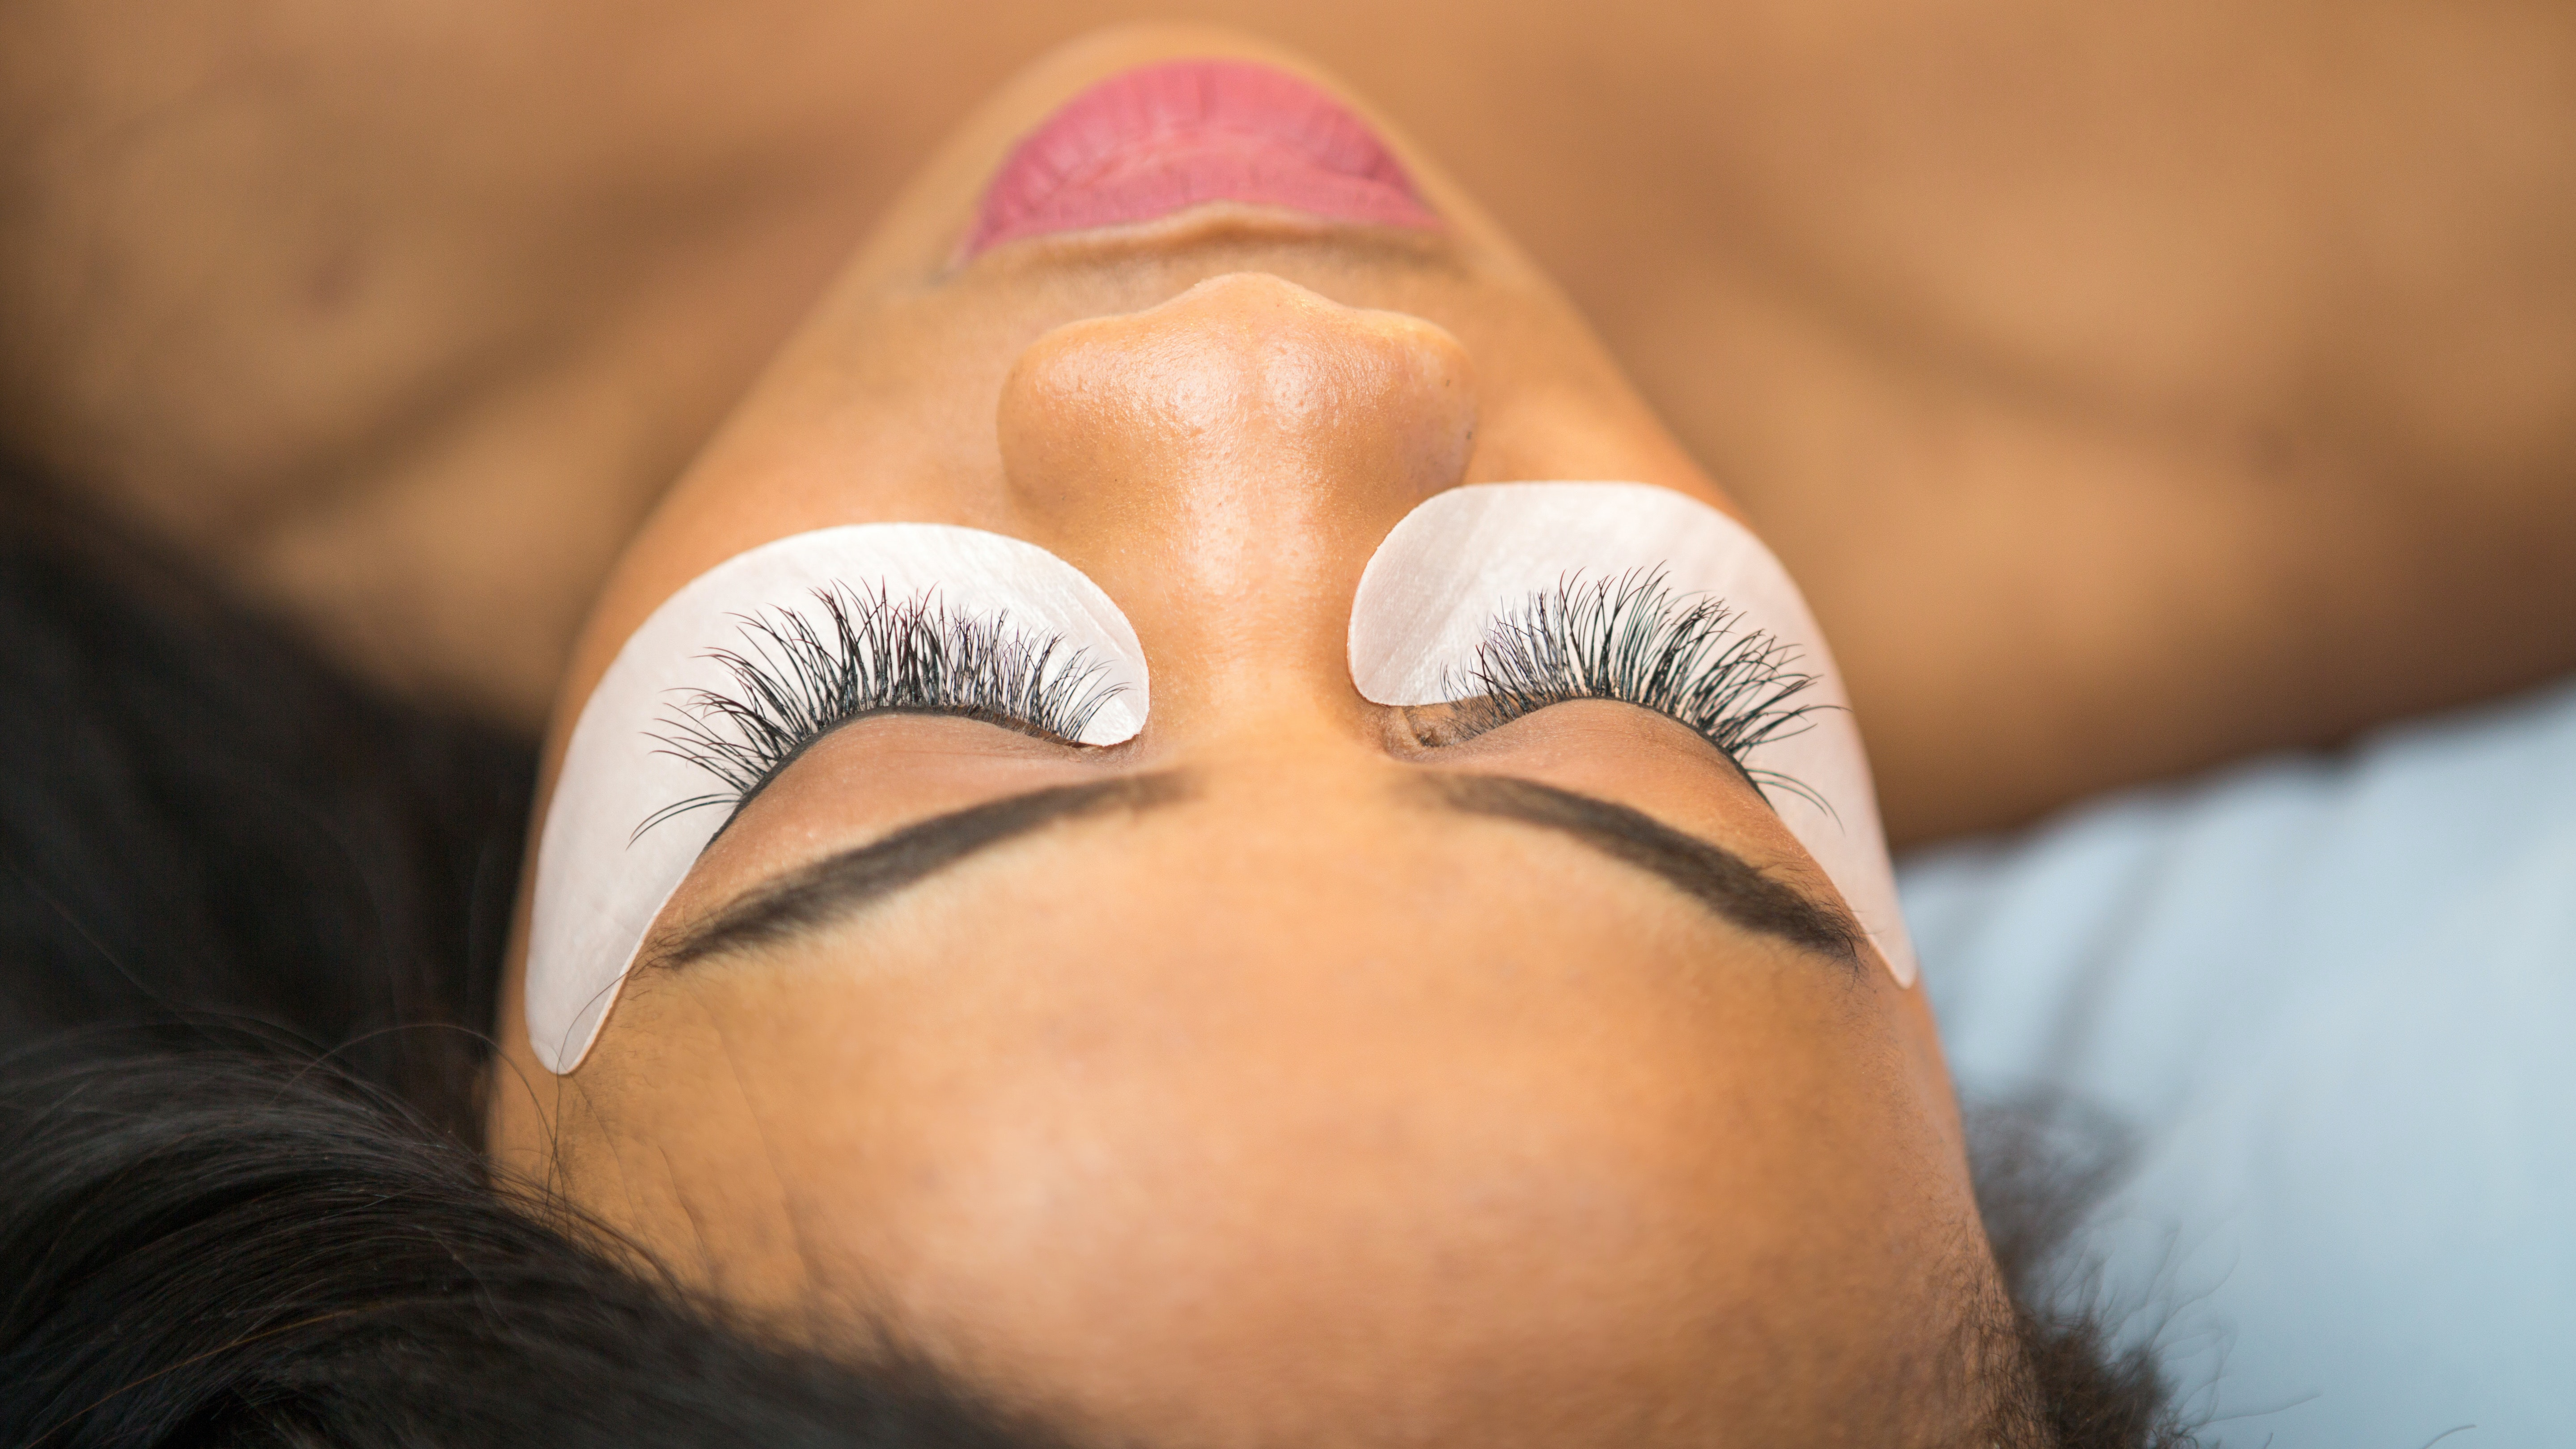 Closeup Of An African-American Woman With Eyelash Extensions